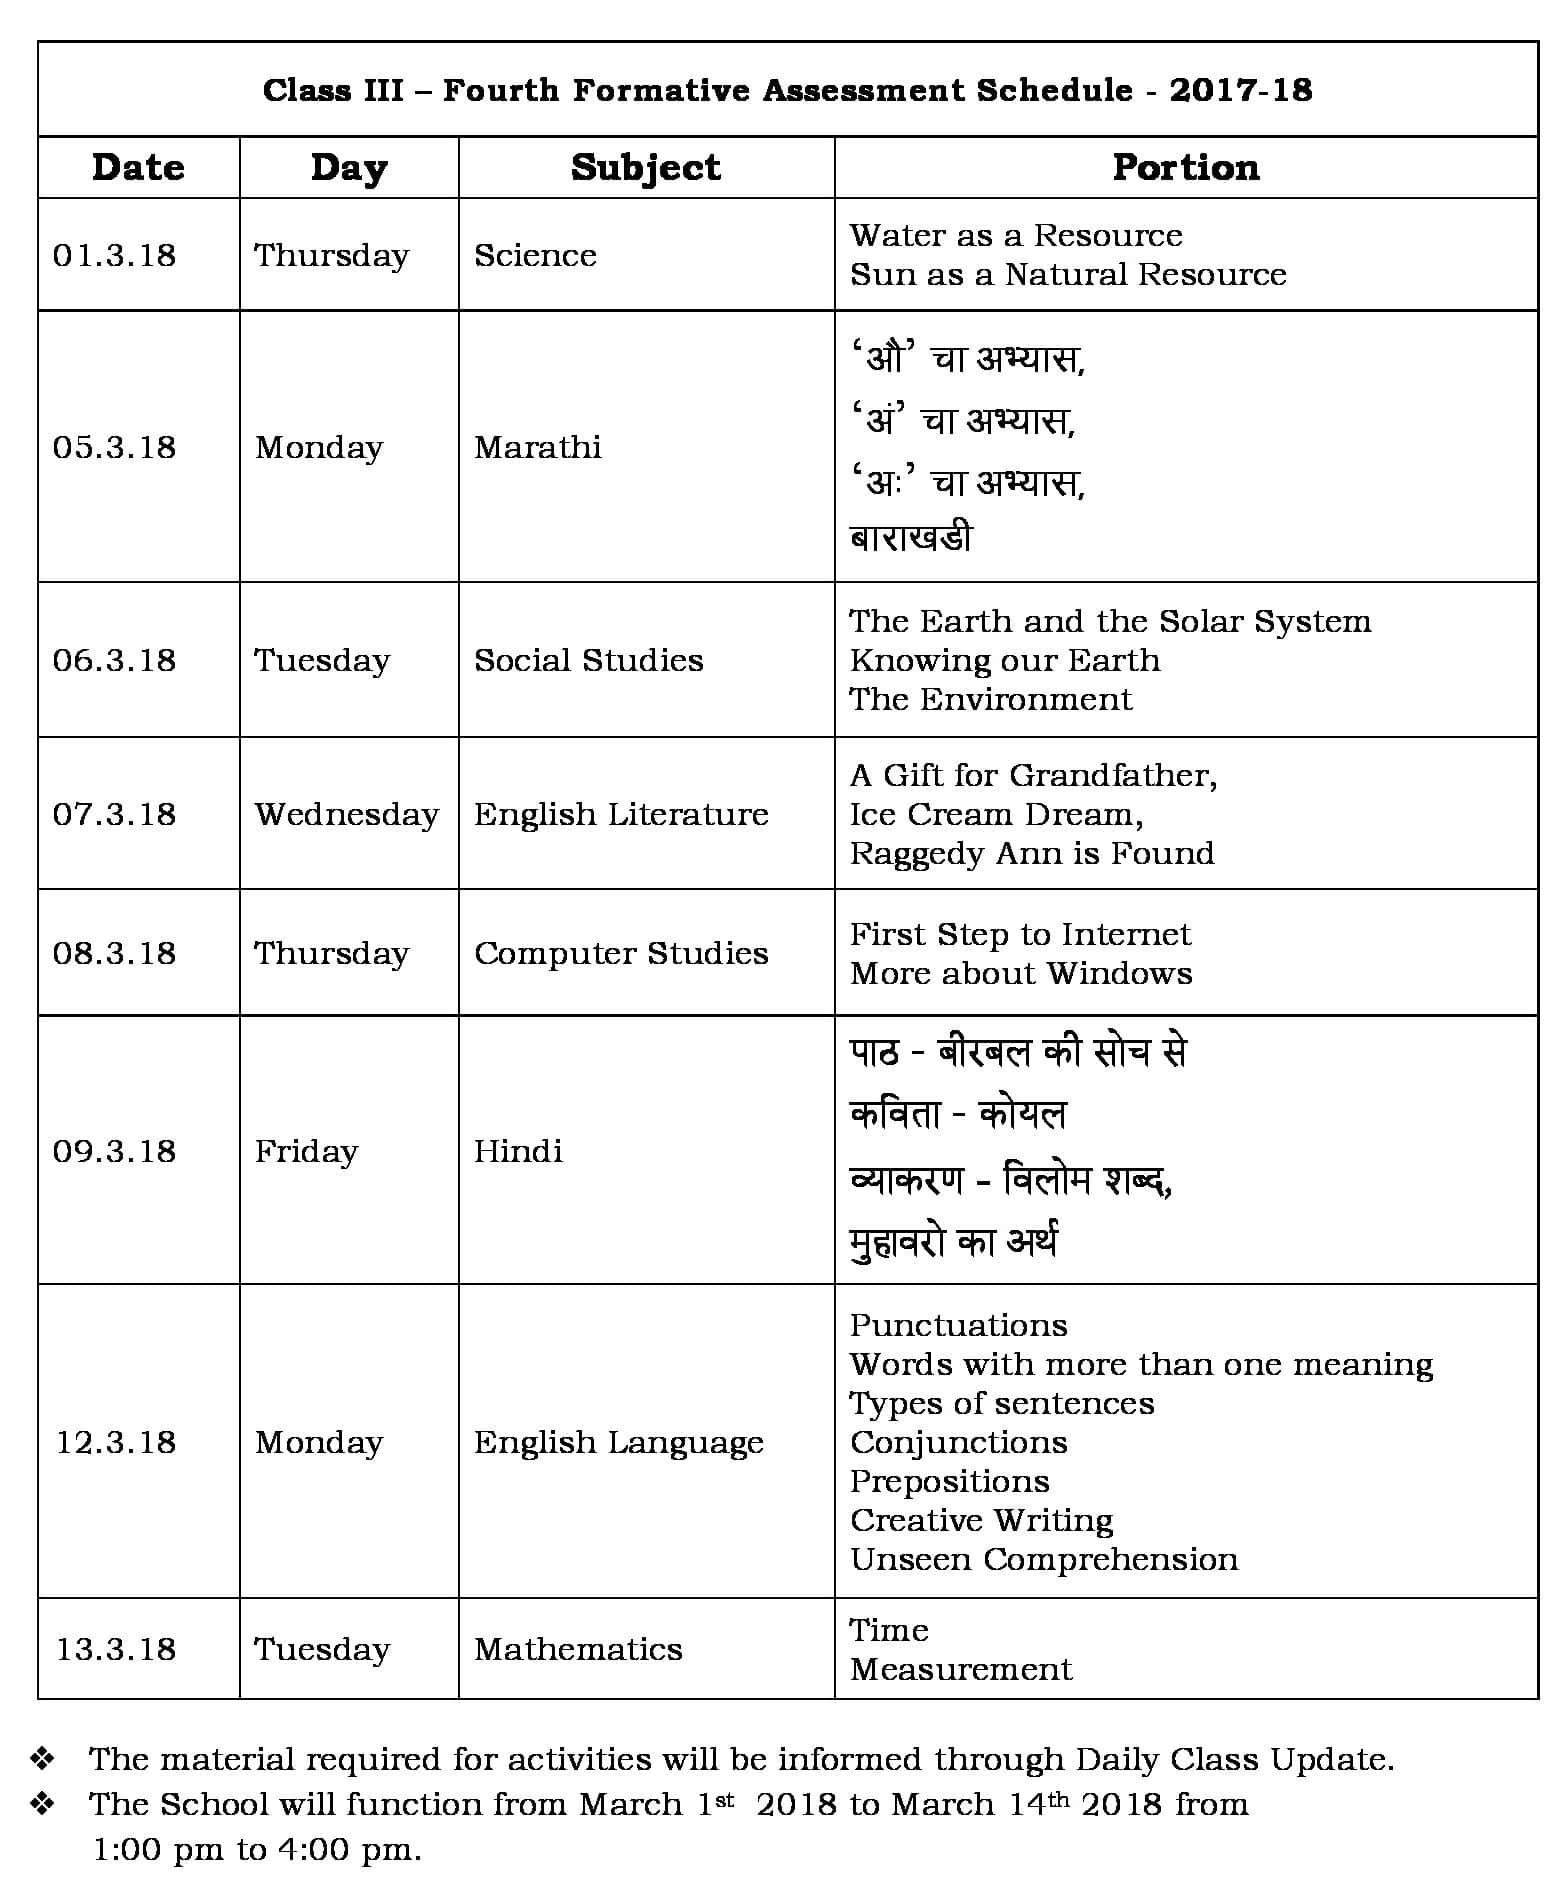 FA 4 Portion and Schedule